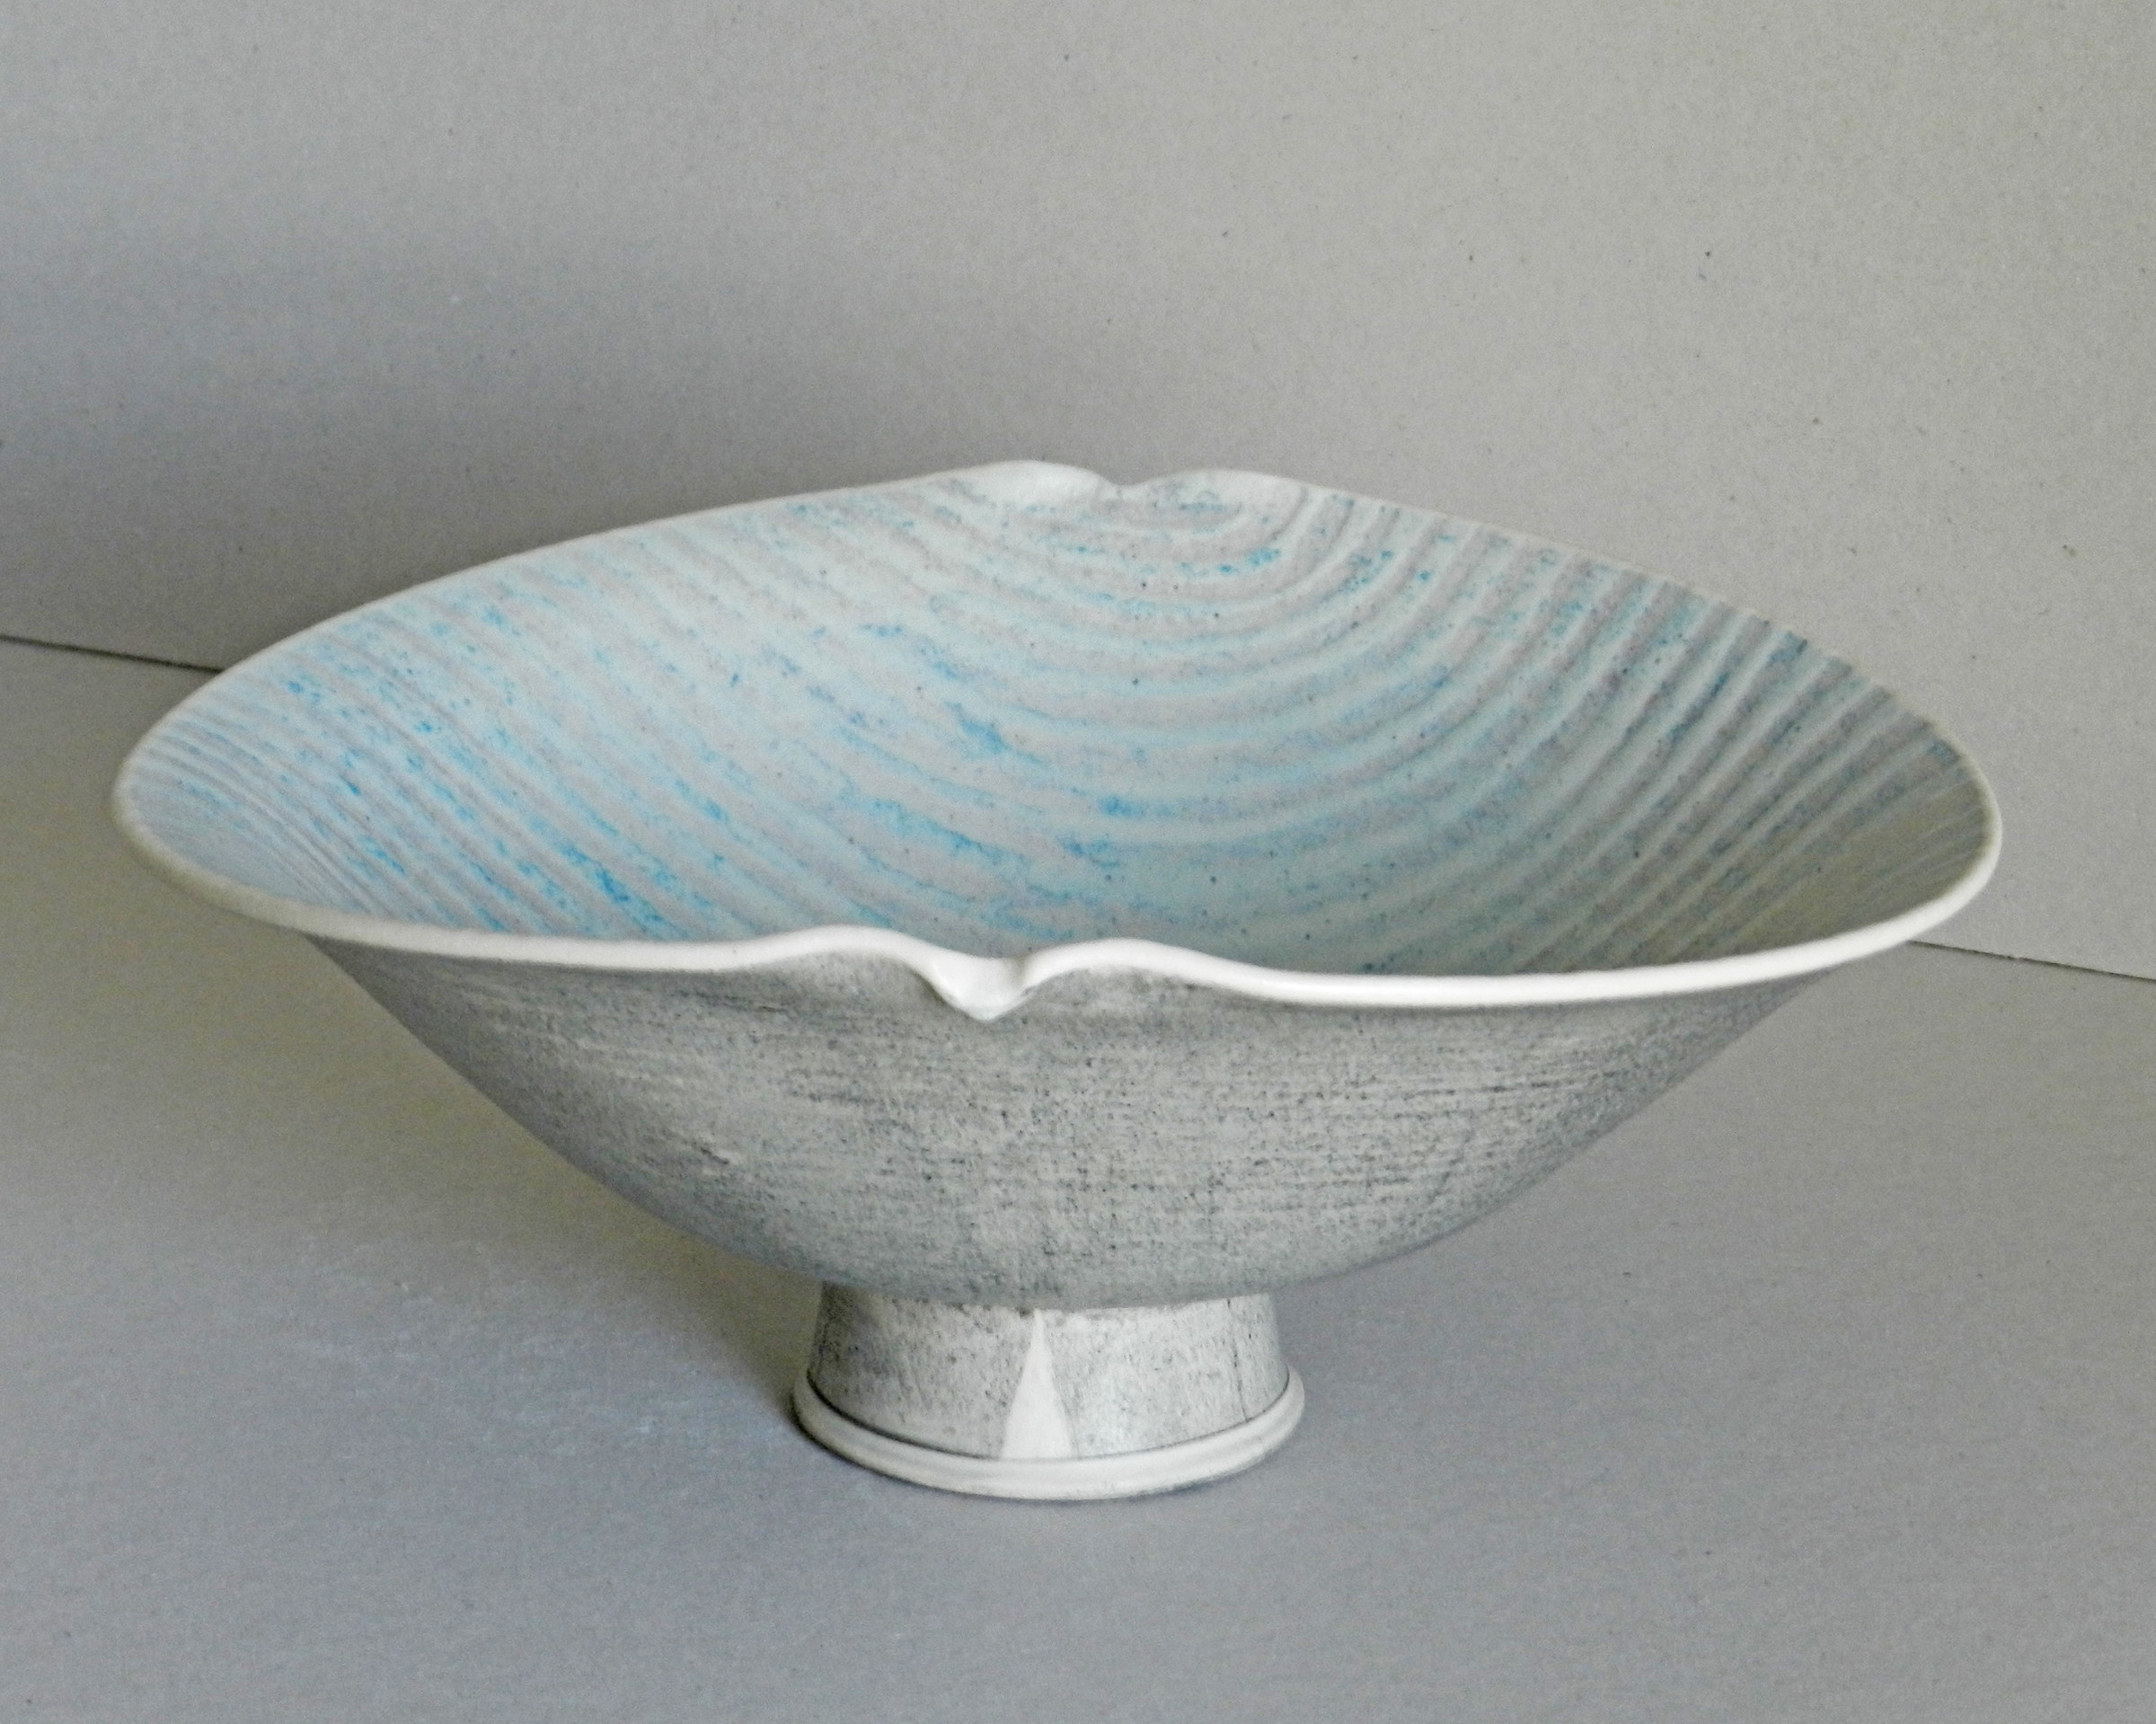 "<span class=""link fancybox-details-link""><a href=""/artists/243-christine-feiler/works/6872-christine-feiler-pedestal-bowl-2019/"">View Detail Page</a></span><div class=""artist""><strong>Christine Feiler</strong></div> b. 1948 <div class=""title""><em>Pedestal bowl</em>, 2019</div> <div class=""signed_and_dated"">Ceramicist mark on base</div> <div class=""medium"">Stoneware with enamels</div><div class=""price"">£320.00</div><div class=""copyright_line"">Copyright The Artist</div>"